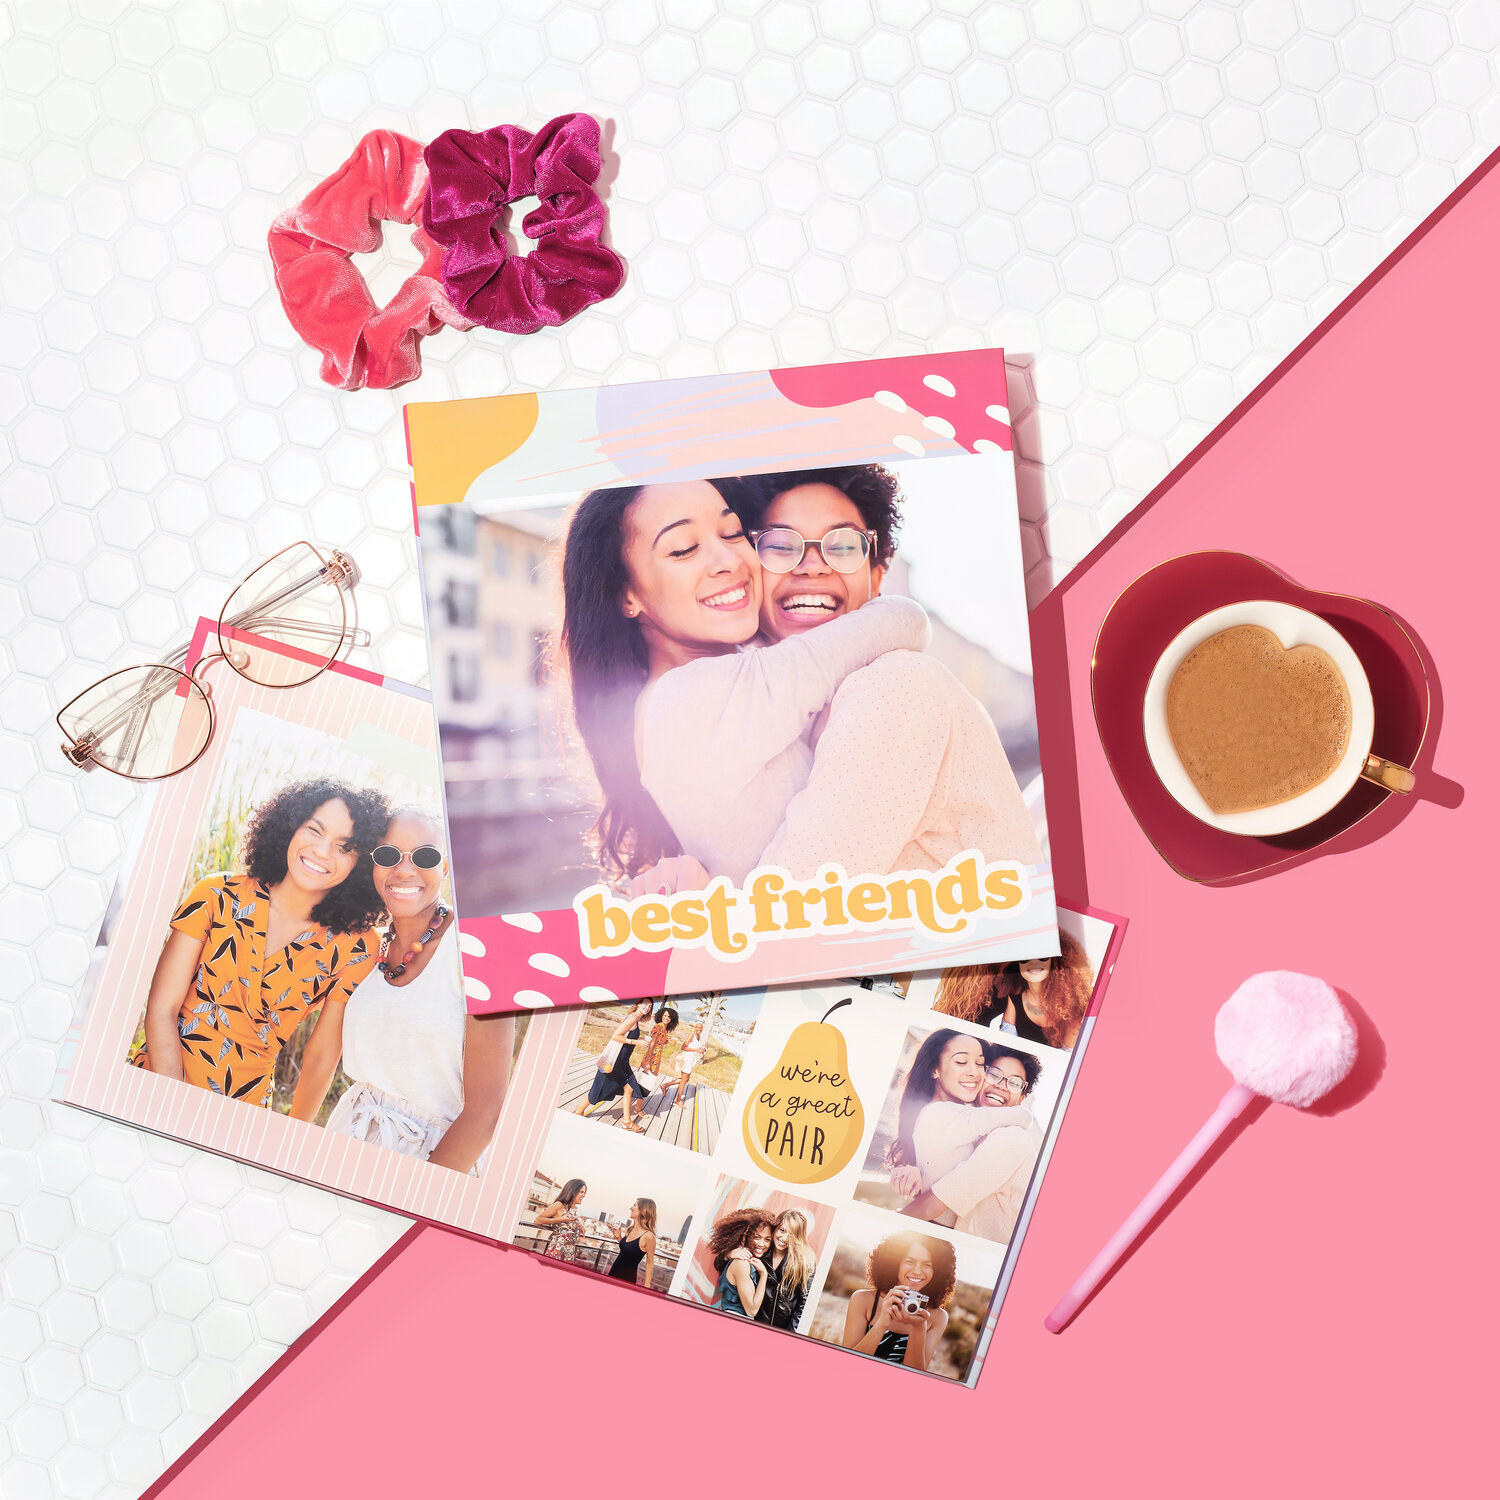 Photo book samples on pink background with various accessories